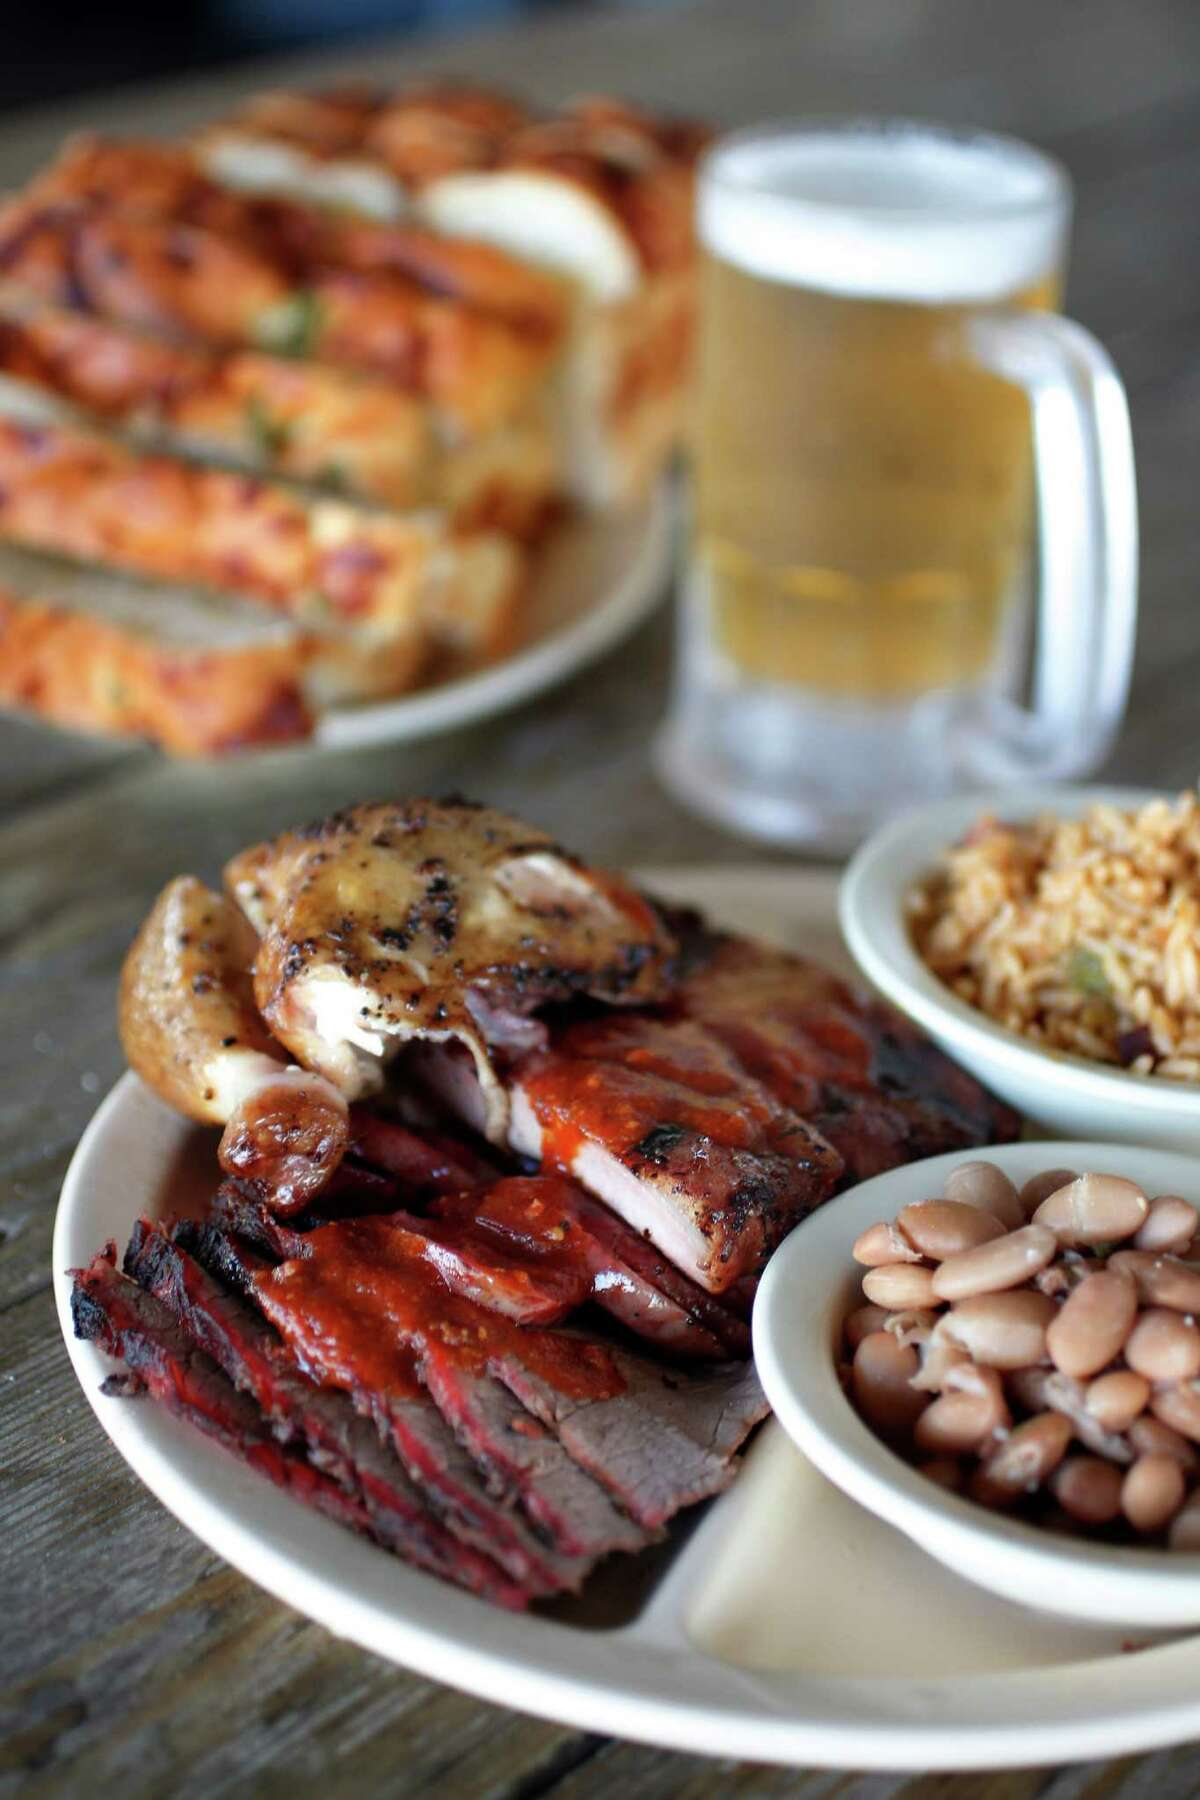 Chicken, Pork Ribs, Beef Brisket, Jambalaya Texana (rice), Jalapeno Pinto Beans, Original Barbeque Sauce and Jalapeno cheese bread served at Goode Co. Barbeque. The company will open two side-by-side restaurants -- Goode Barbecue and Goode Co. Kitchen & Cantina -- in the Woodlands.